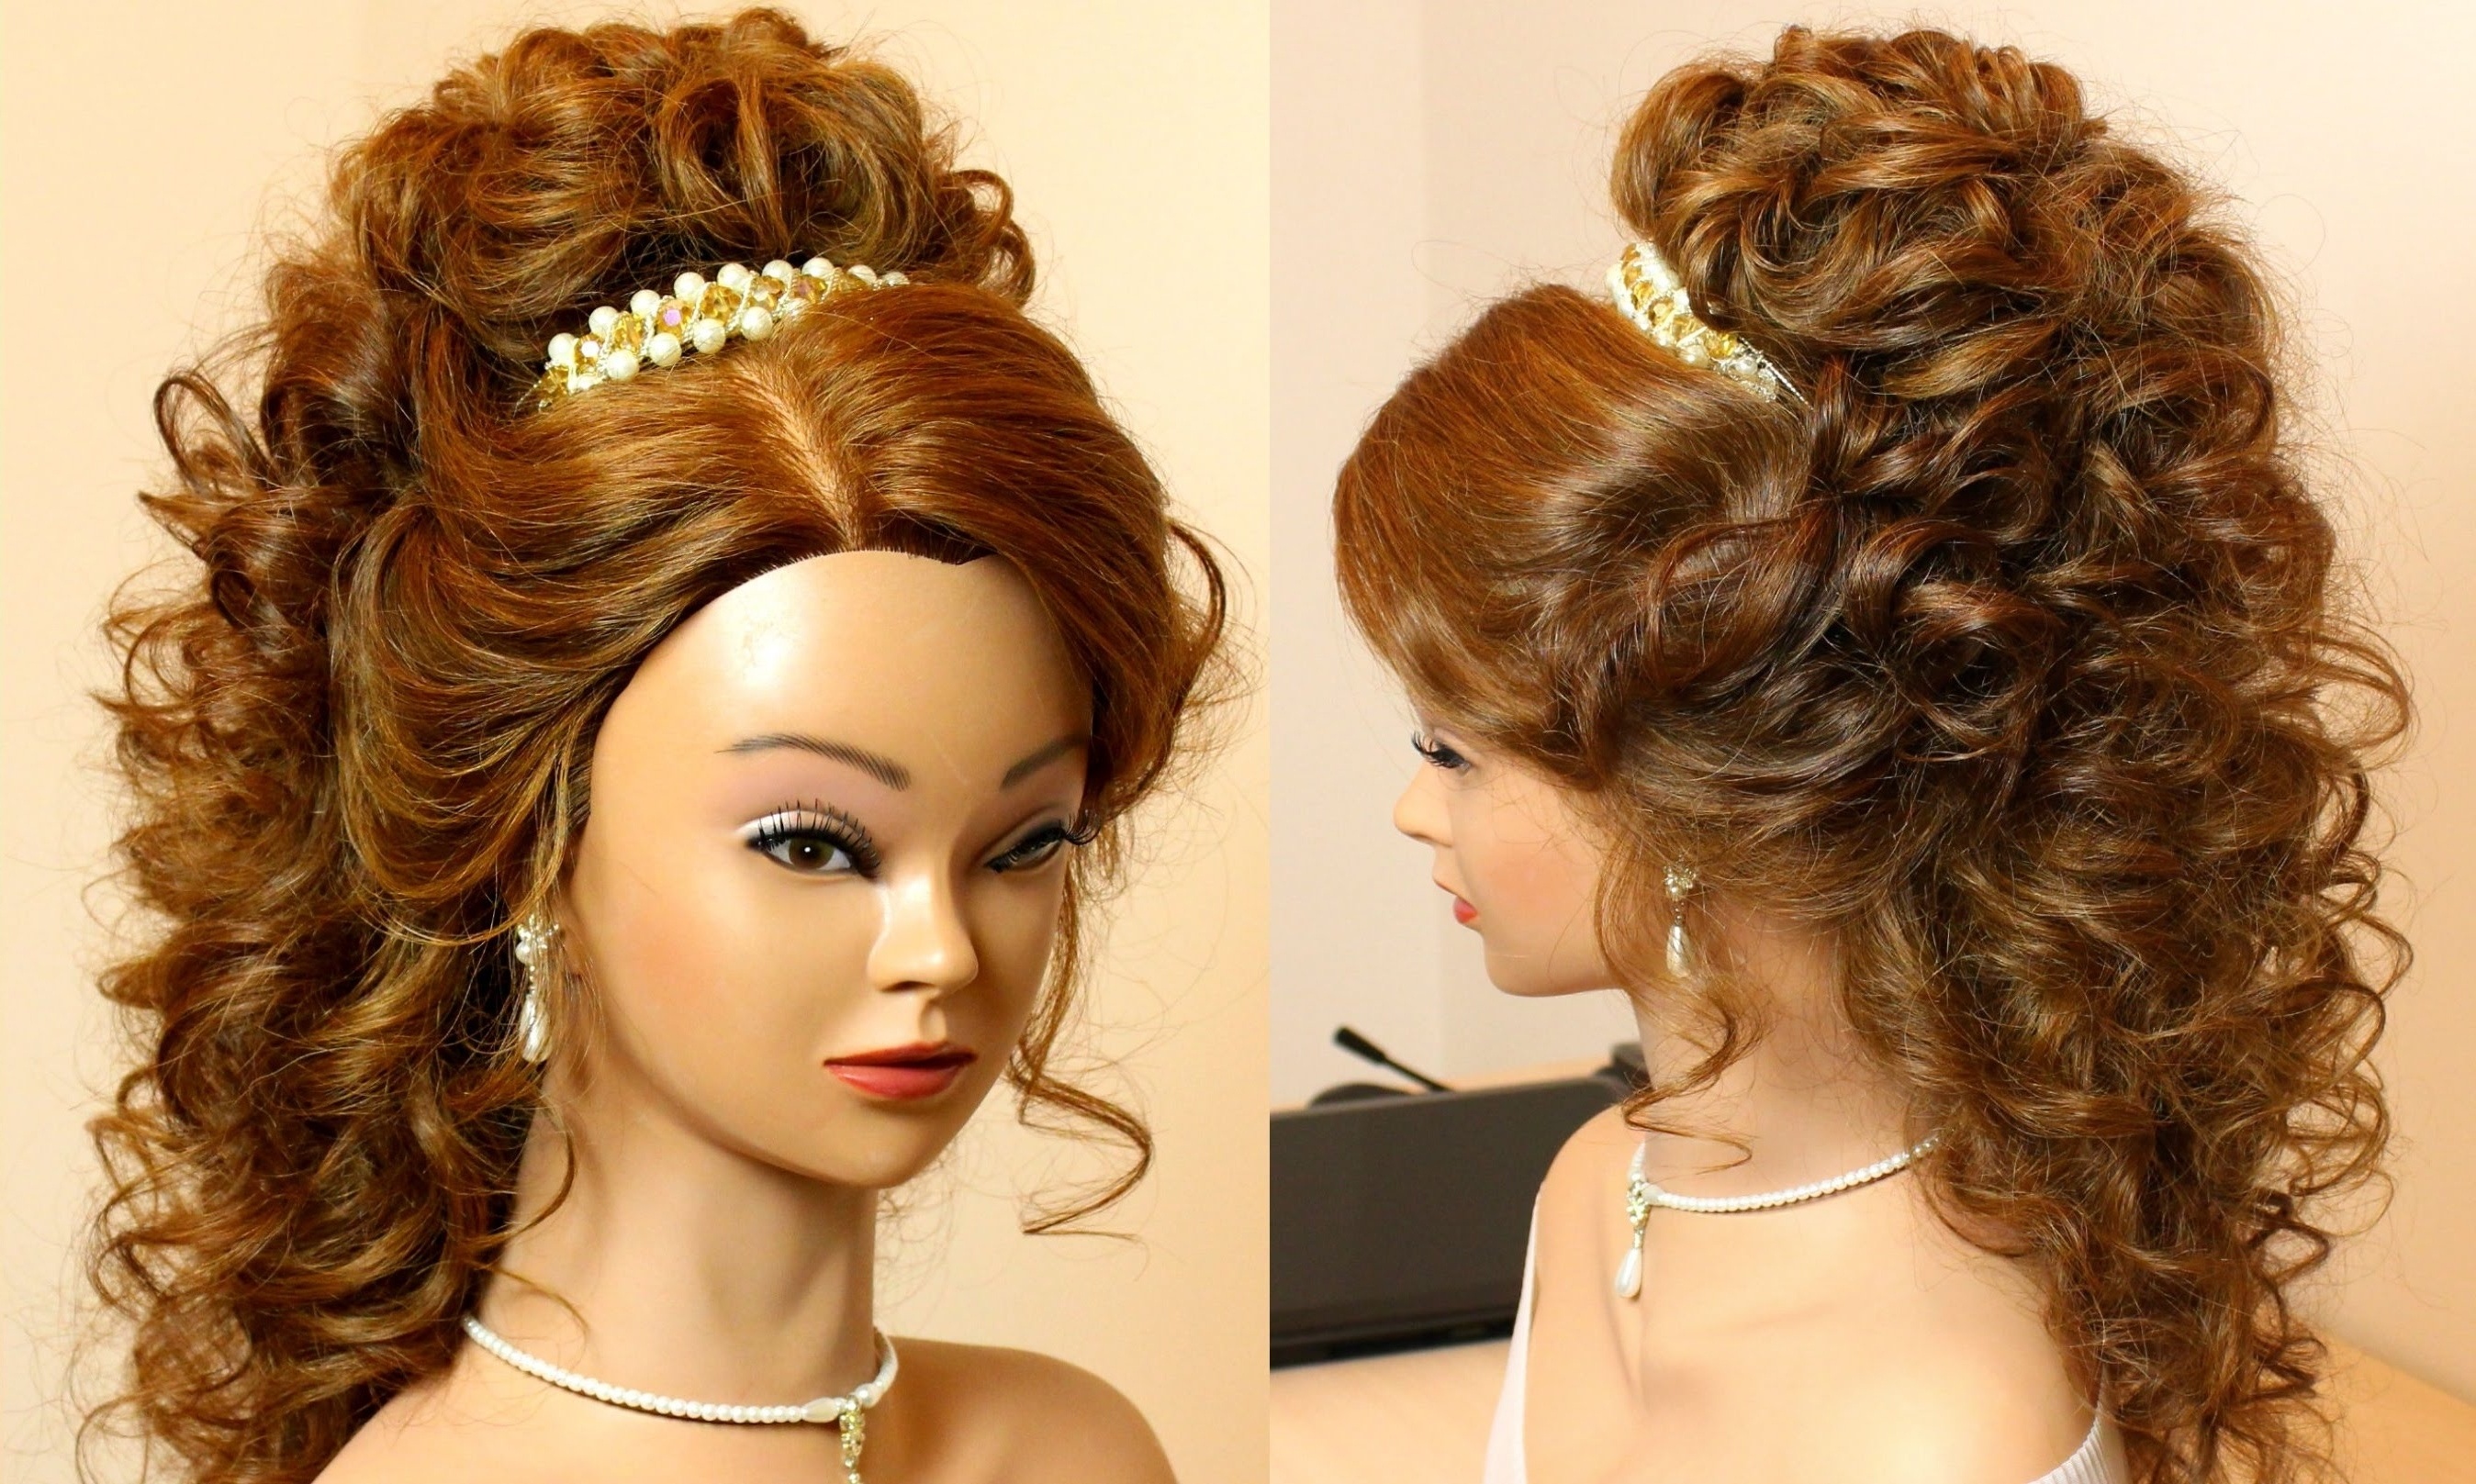 Famous Curly Wedding Hairstyles Inside Pleasing Long Curly Hair Wedding Hairstyles On Curly Bridal (View 12 of 15)